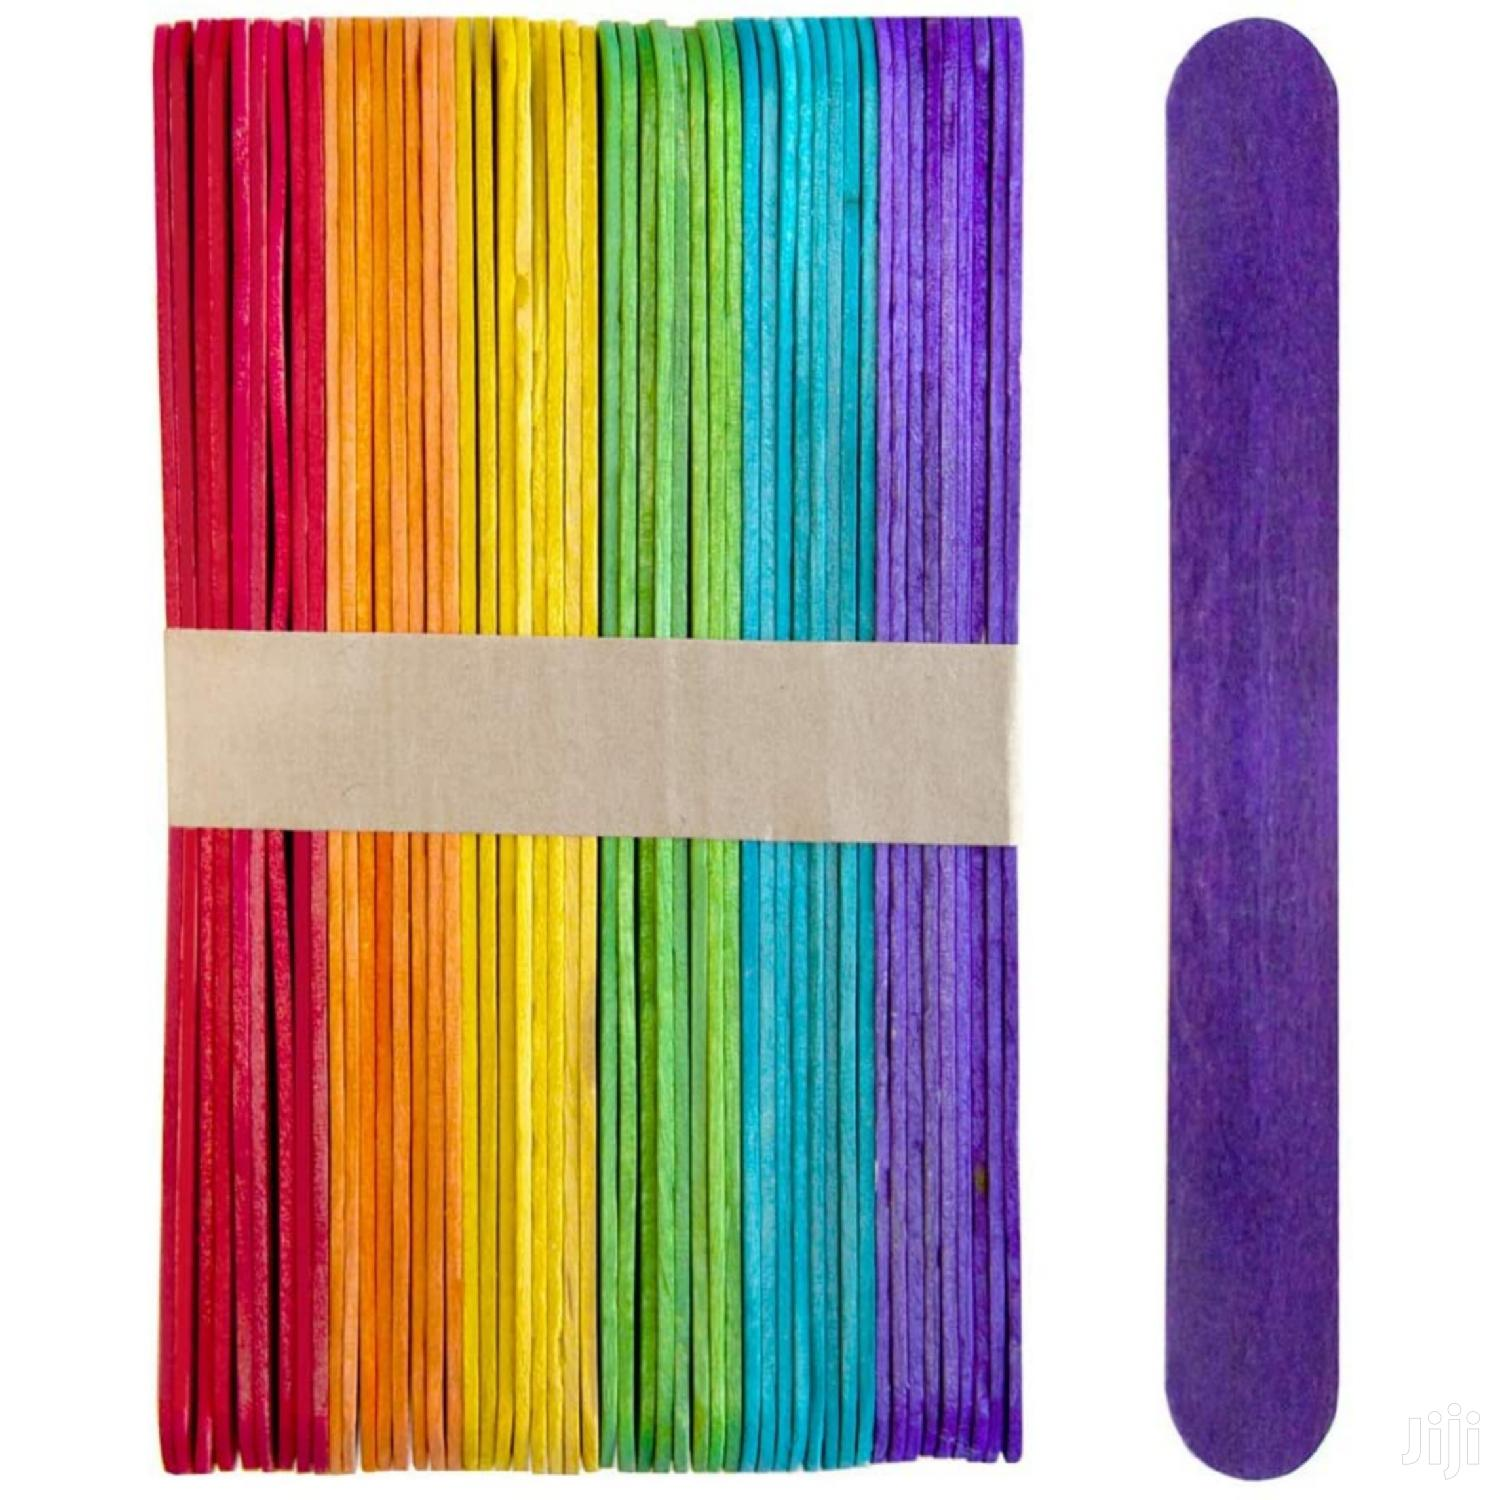 Bamboo Craft Popsicle Sticks | Restaurant & Catering Equipment for sale in Accra Metropolitan, Greater Accra, Ghana